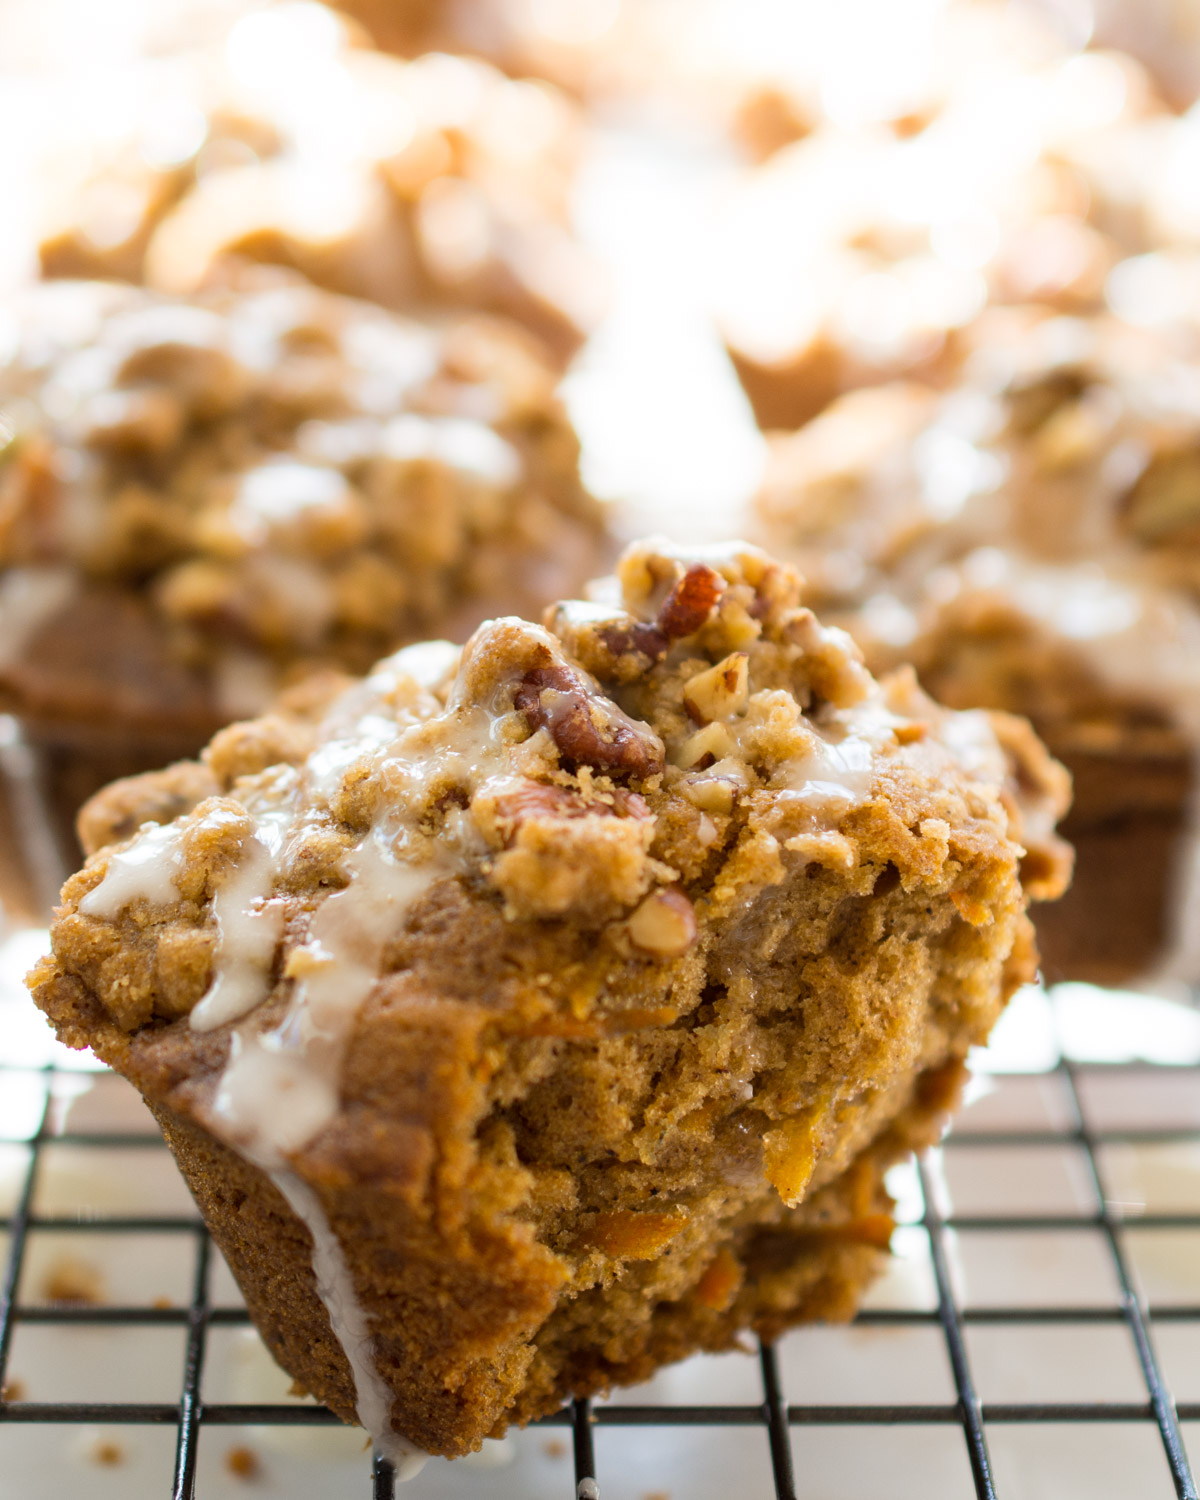 Carrot Cake Muffin topped with pecan streusel and lemon glaze. Ready to eat!